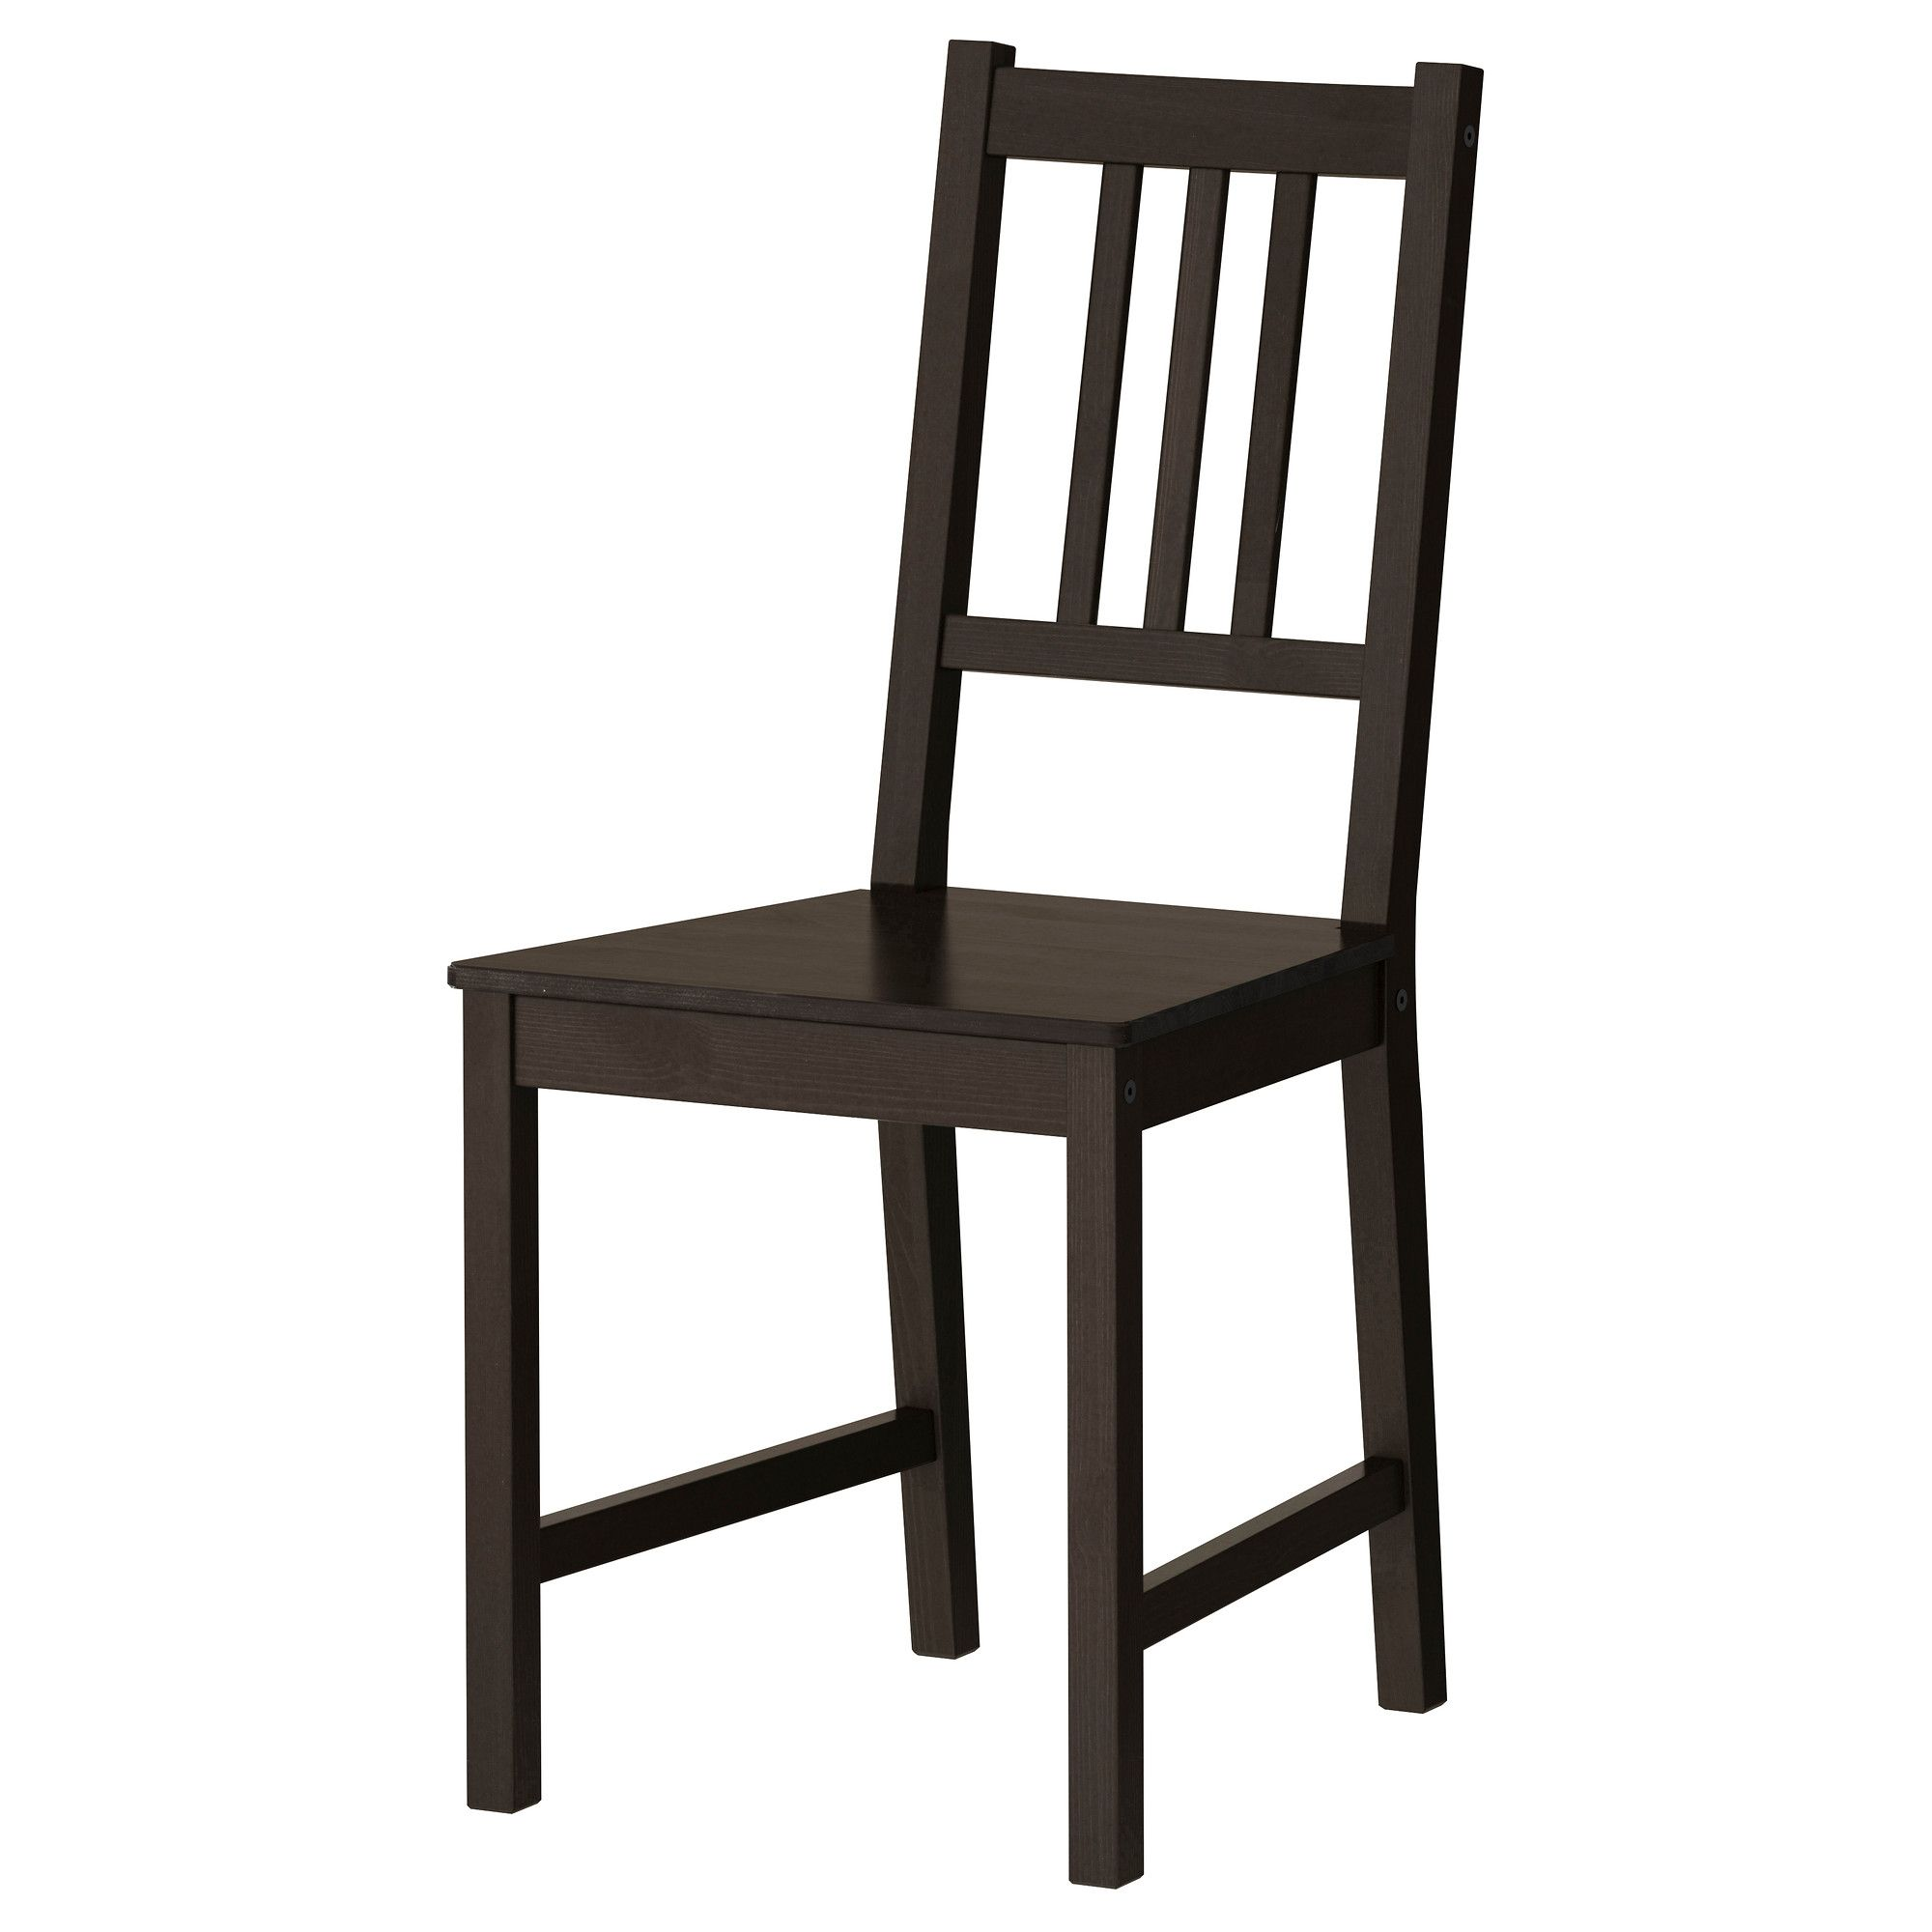 Stefan chair ikea for extra seating 25 00 solid wood